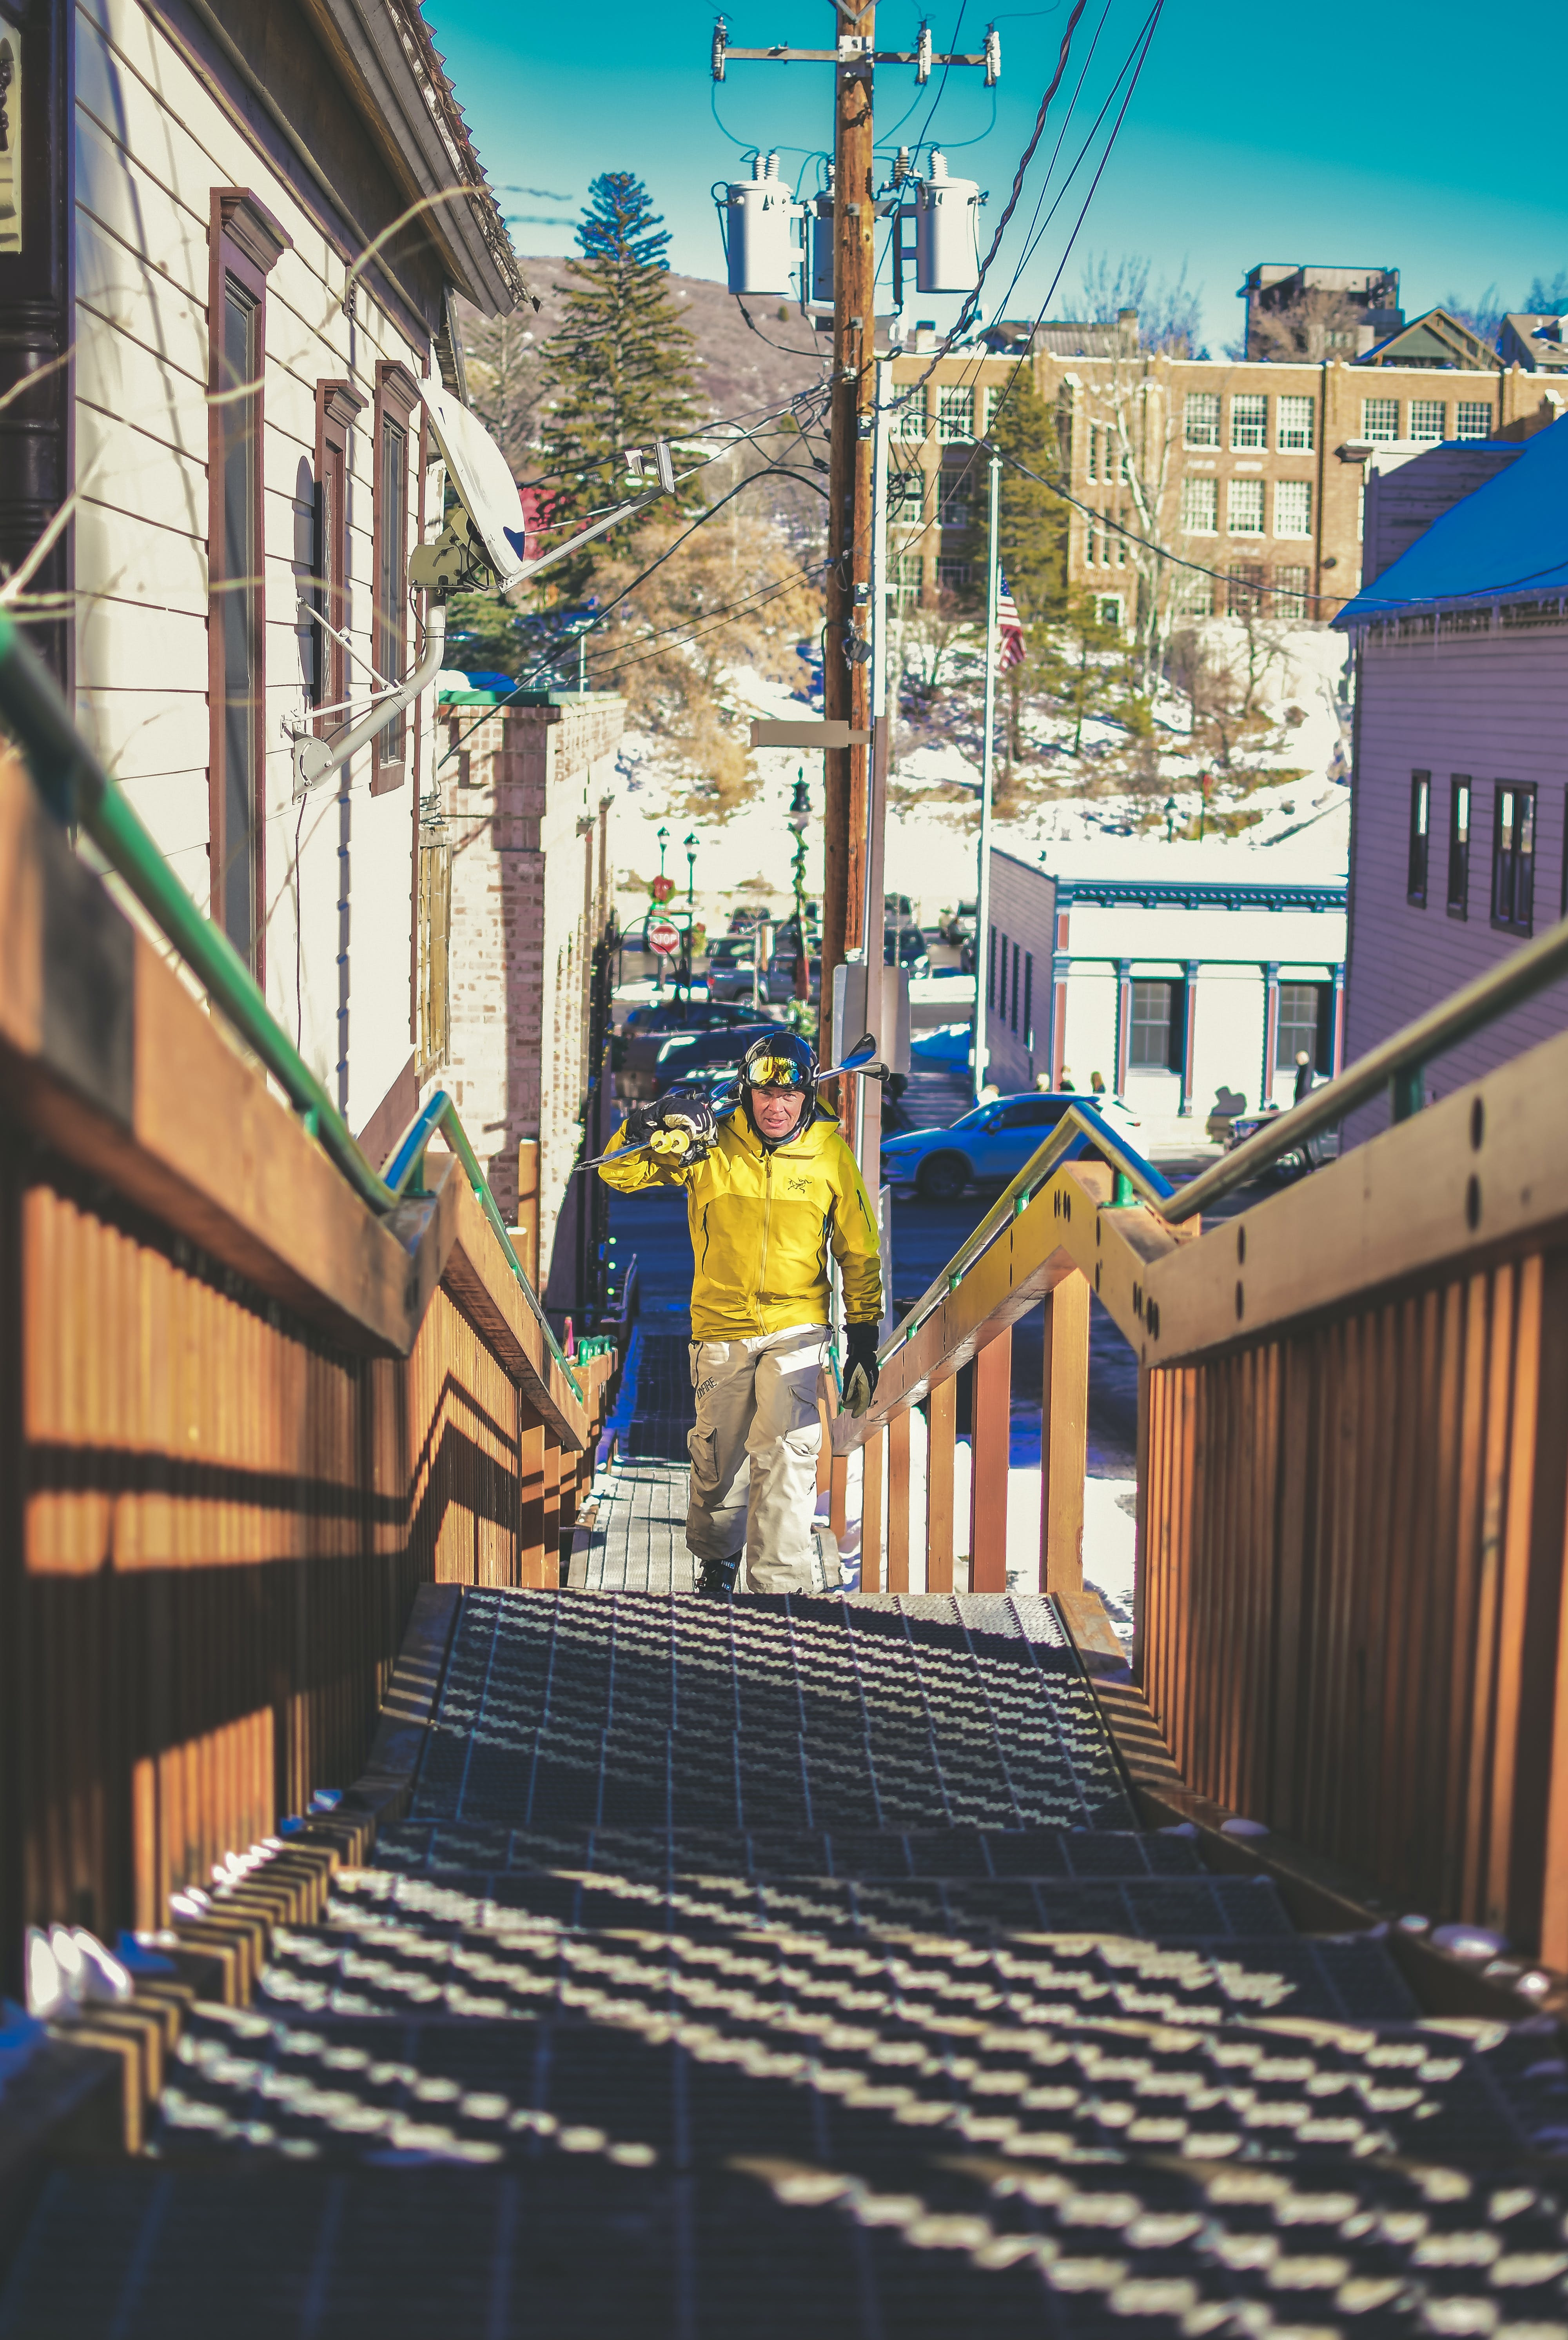 Man in Yellow Jacket Climbing Stairs